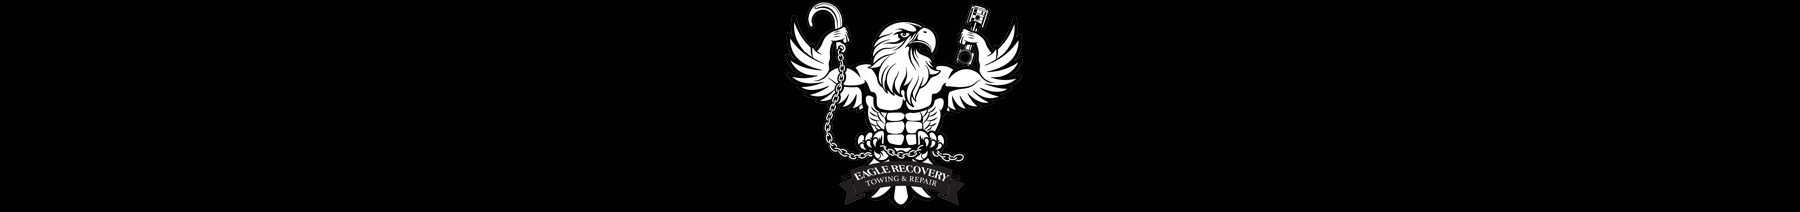 eagle recovery towing cody wyoming logo